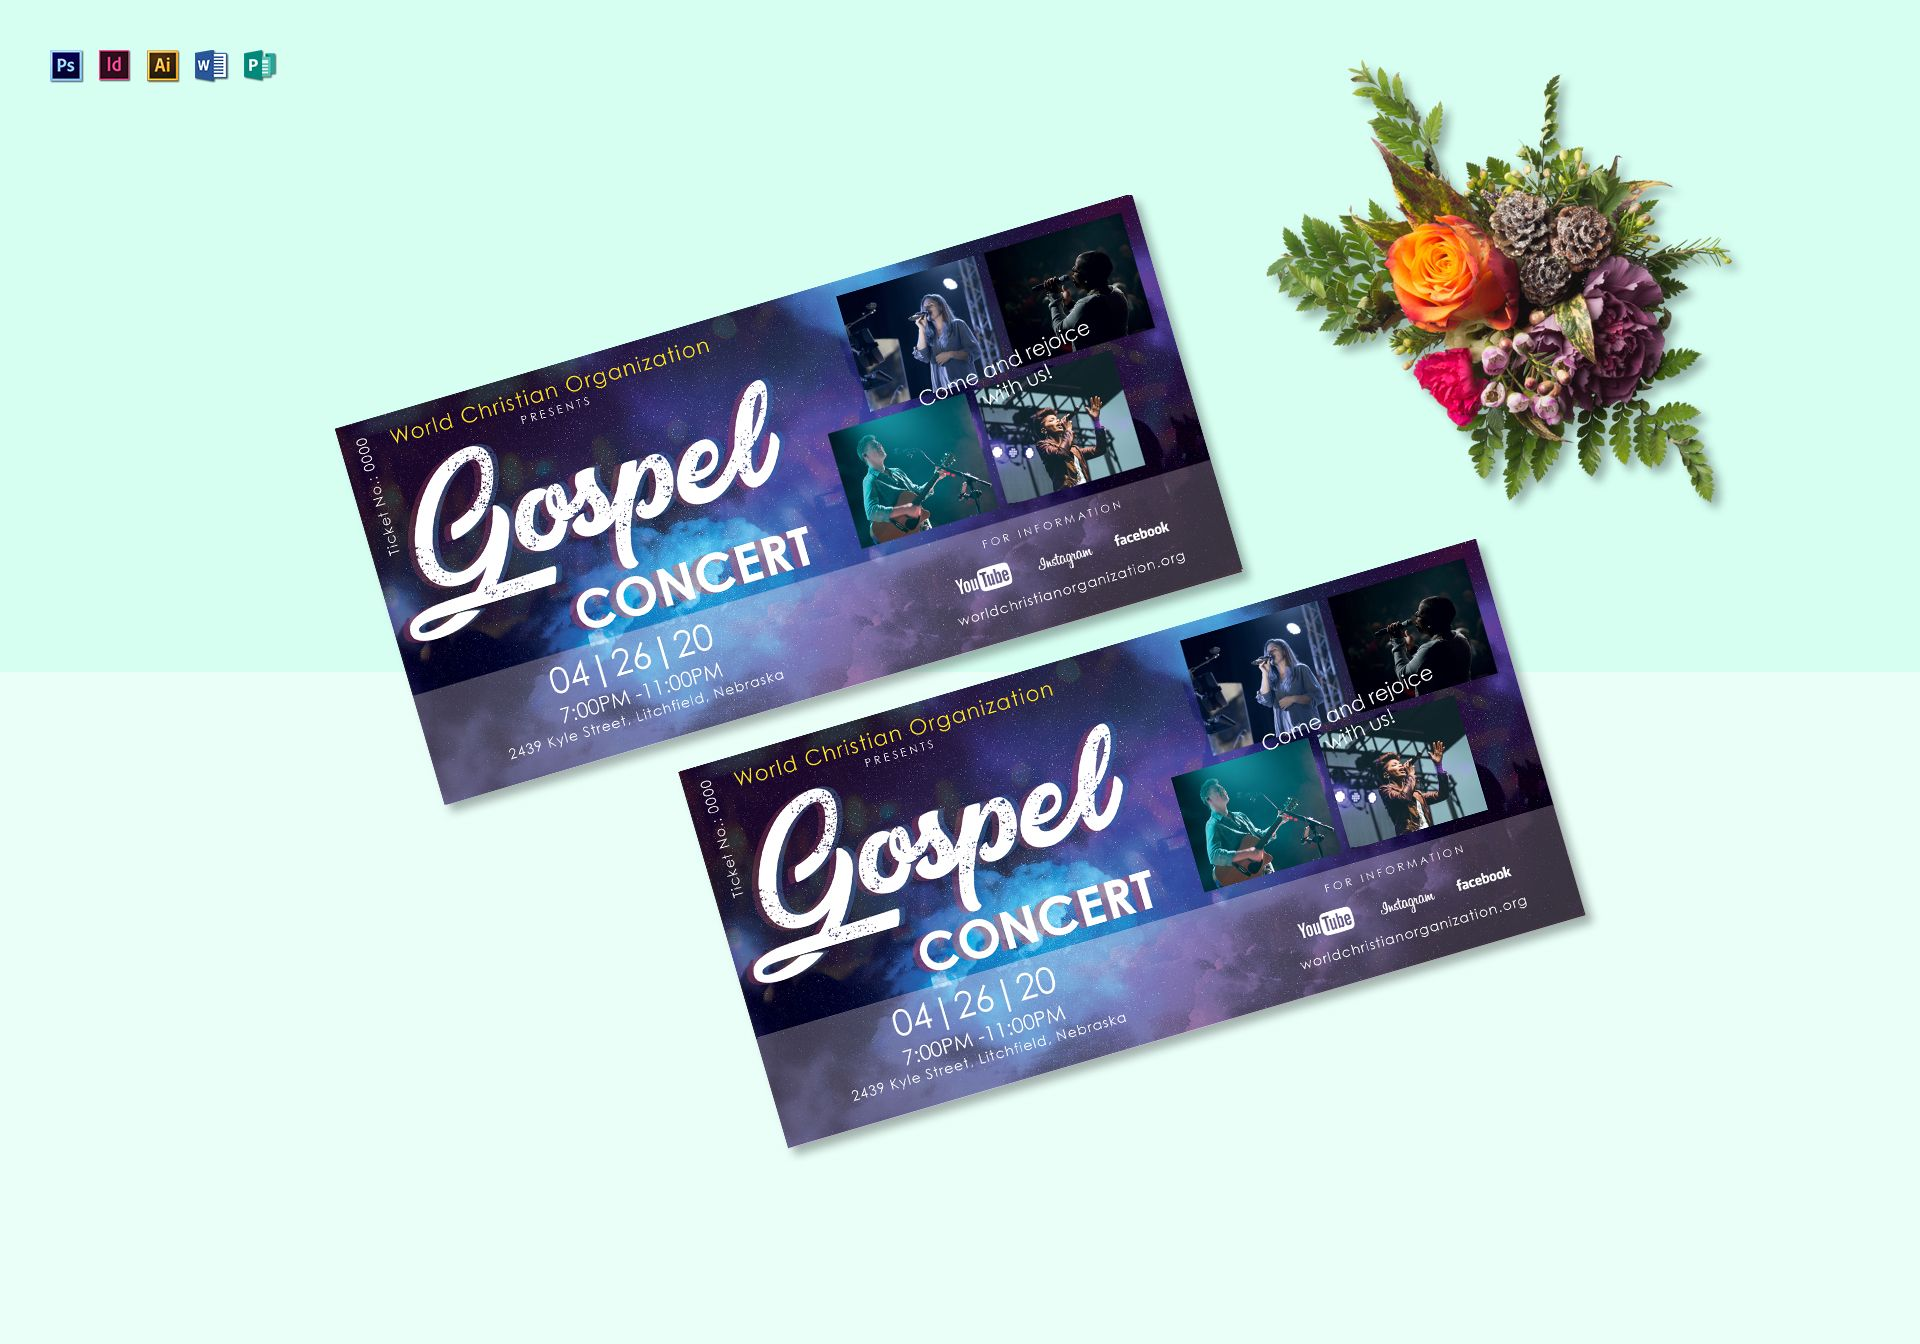 gospel concert ticket design template in psd word publisher illustrator indesign. Black Bedroom Furniture Sets. Home Design Ideas